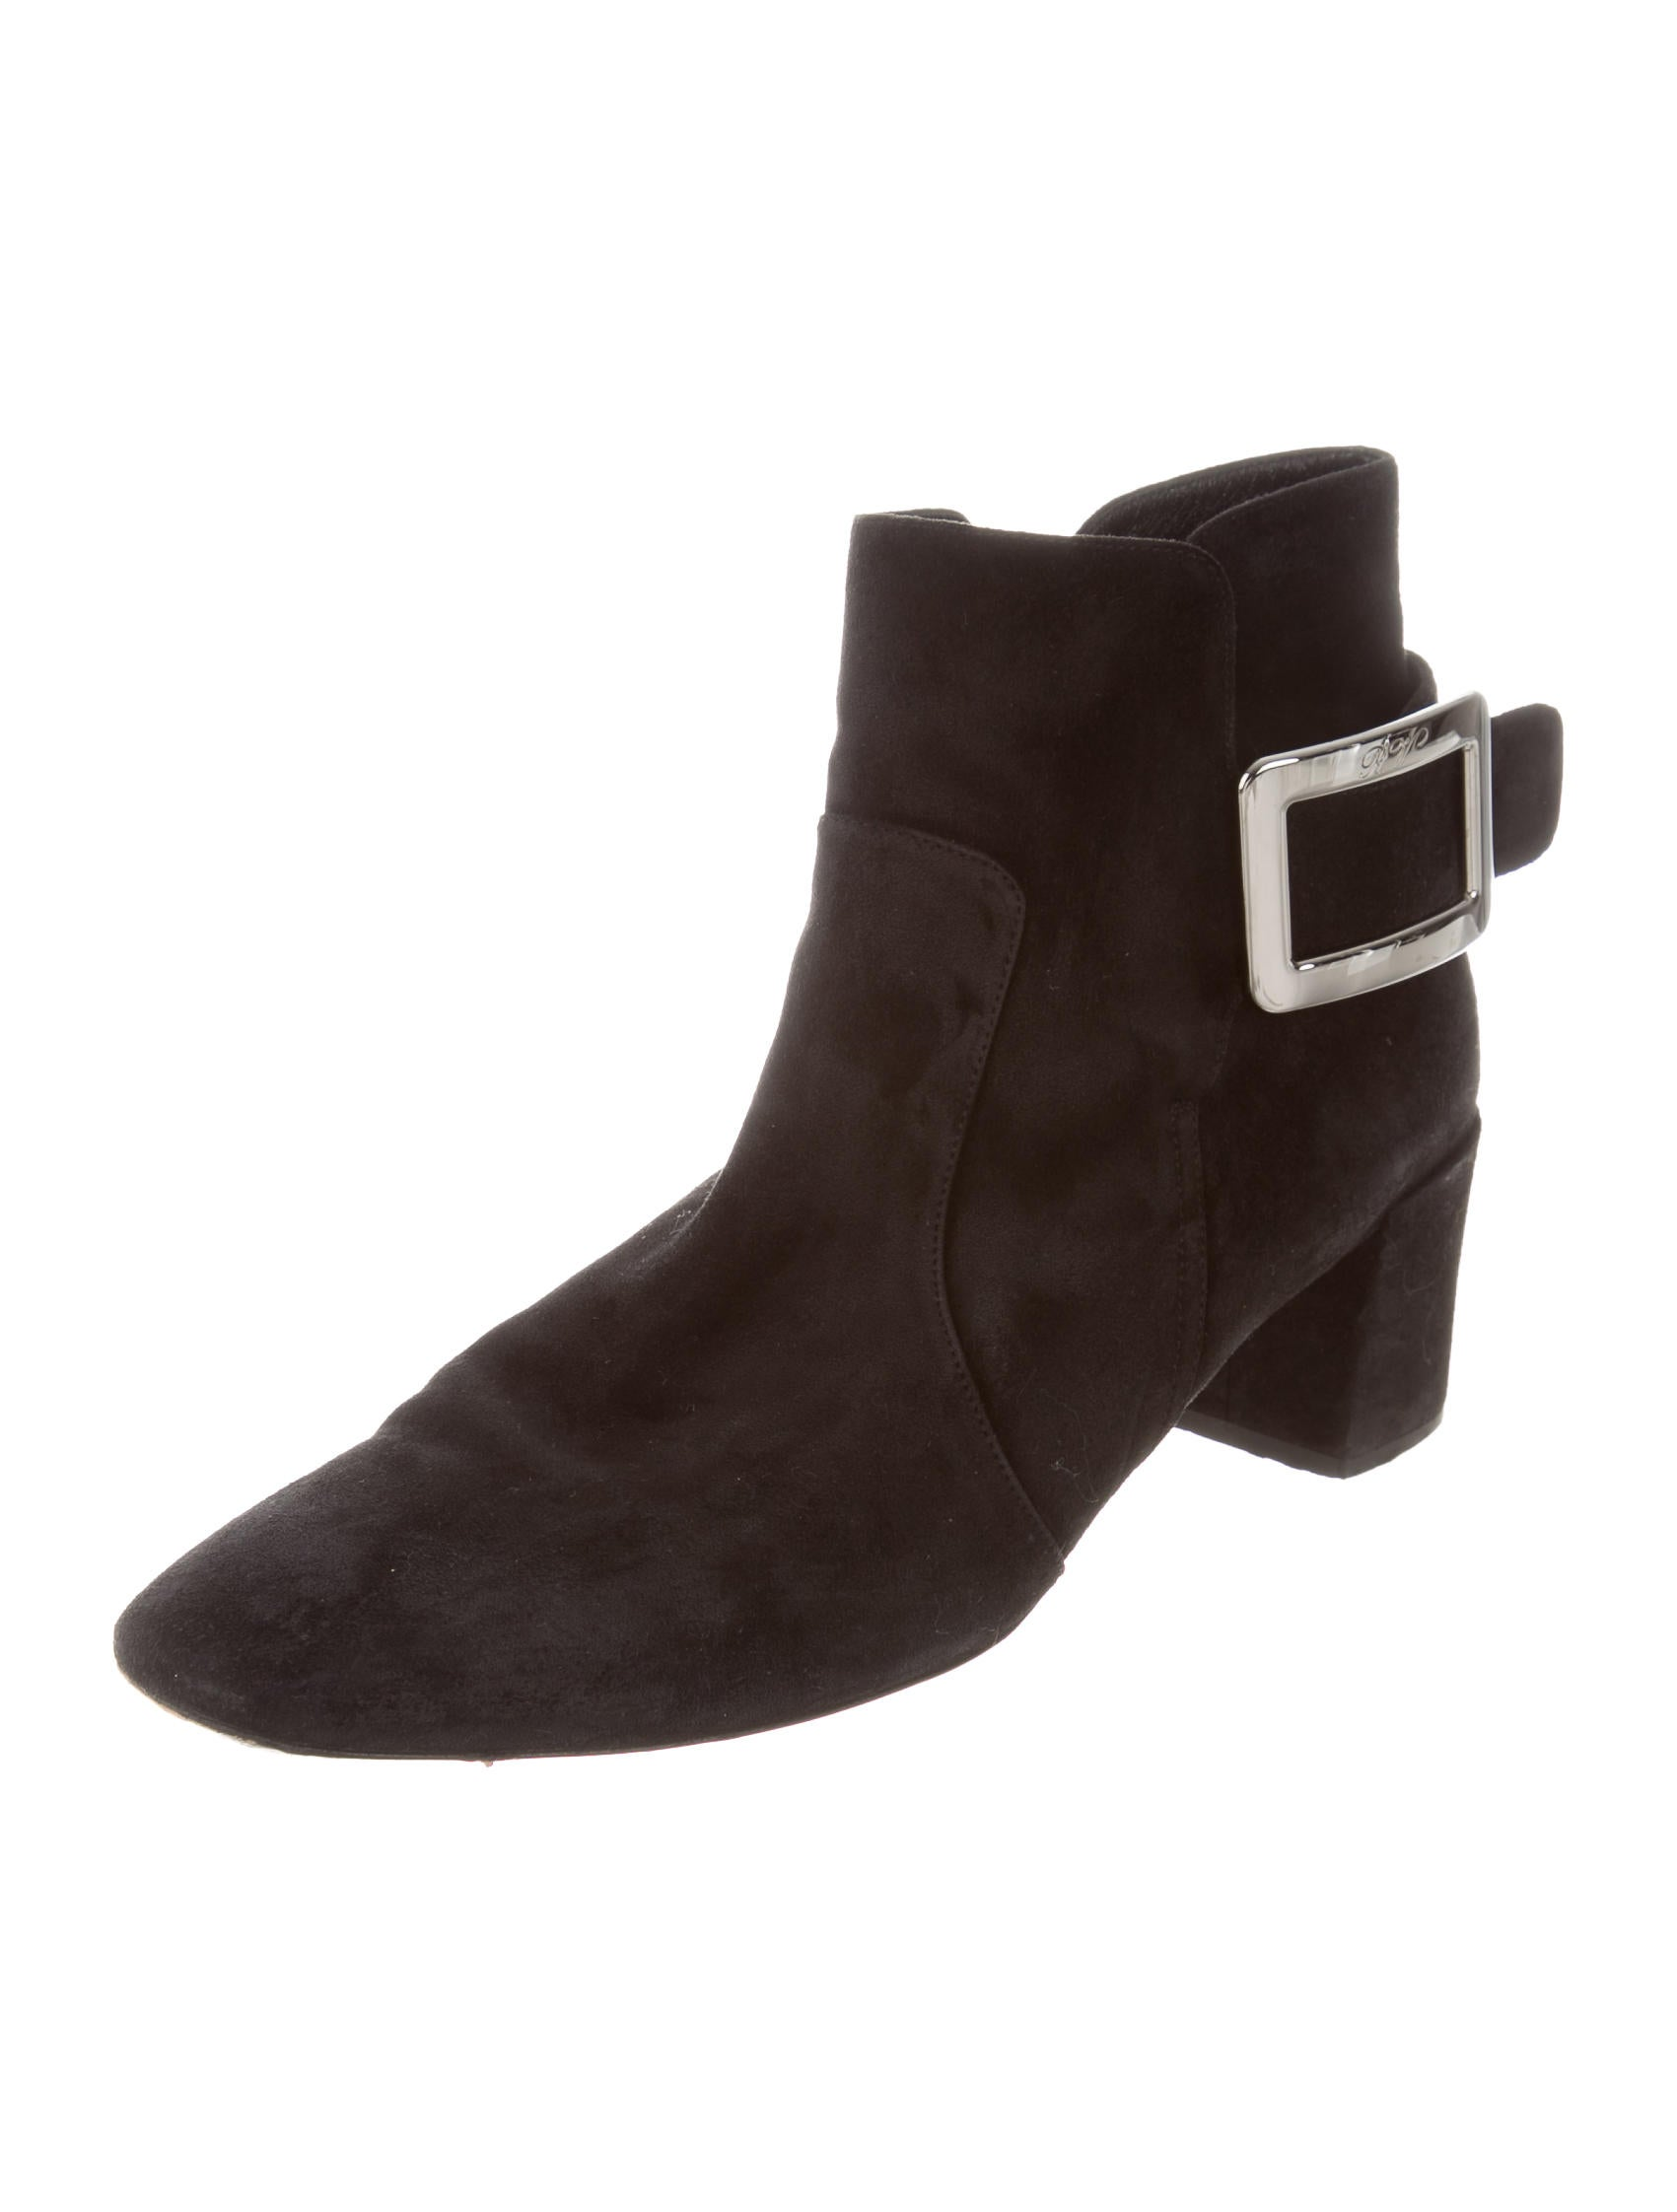 roger vivier suede buckle boots shoes rov25678 the realreal